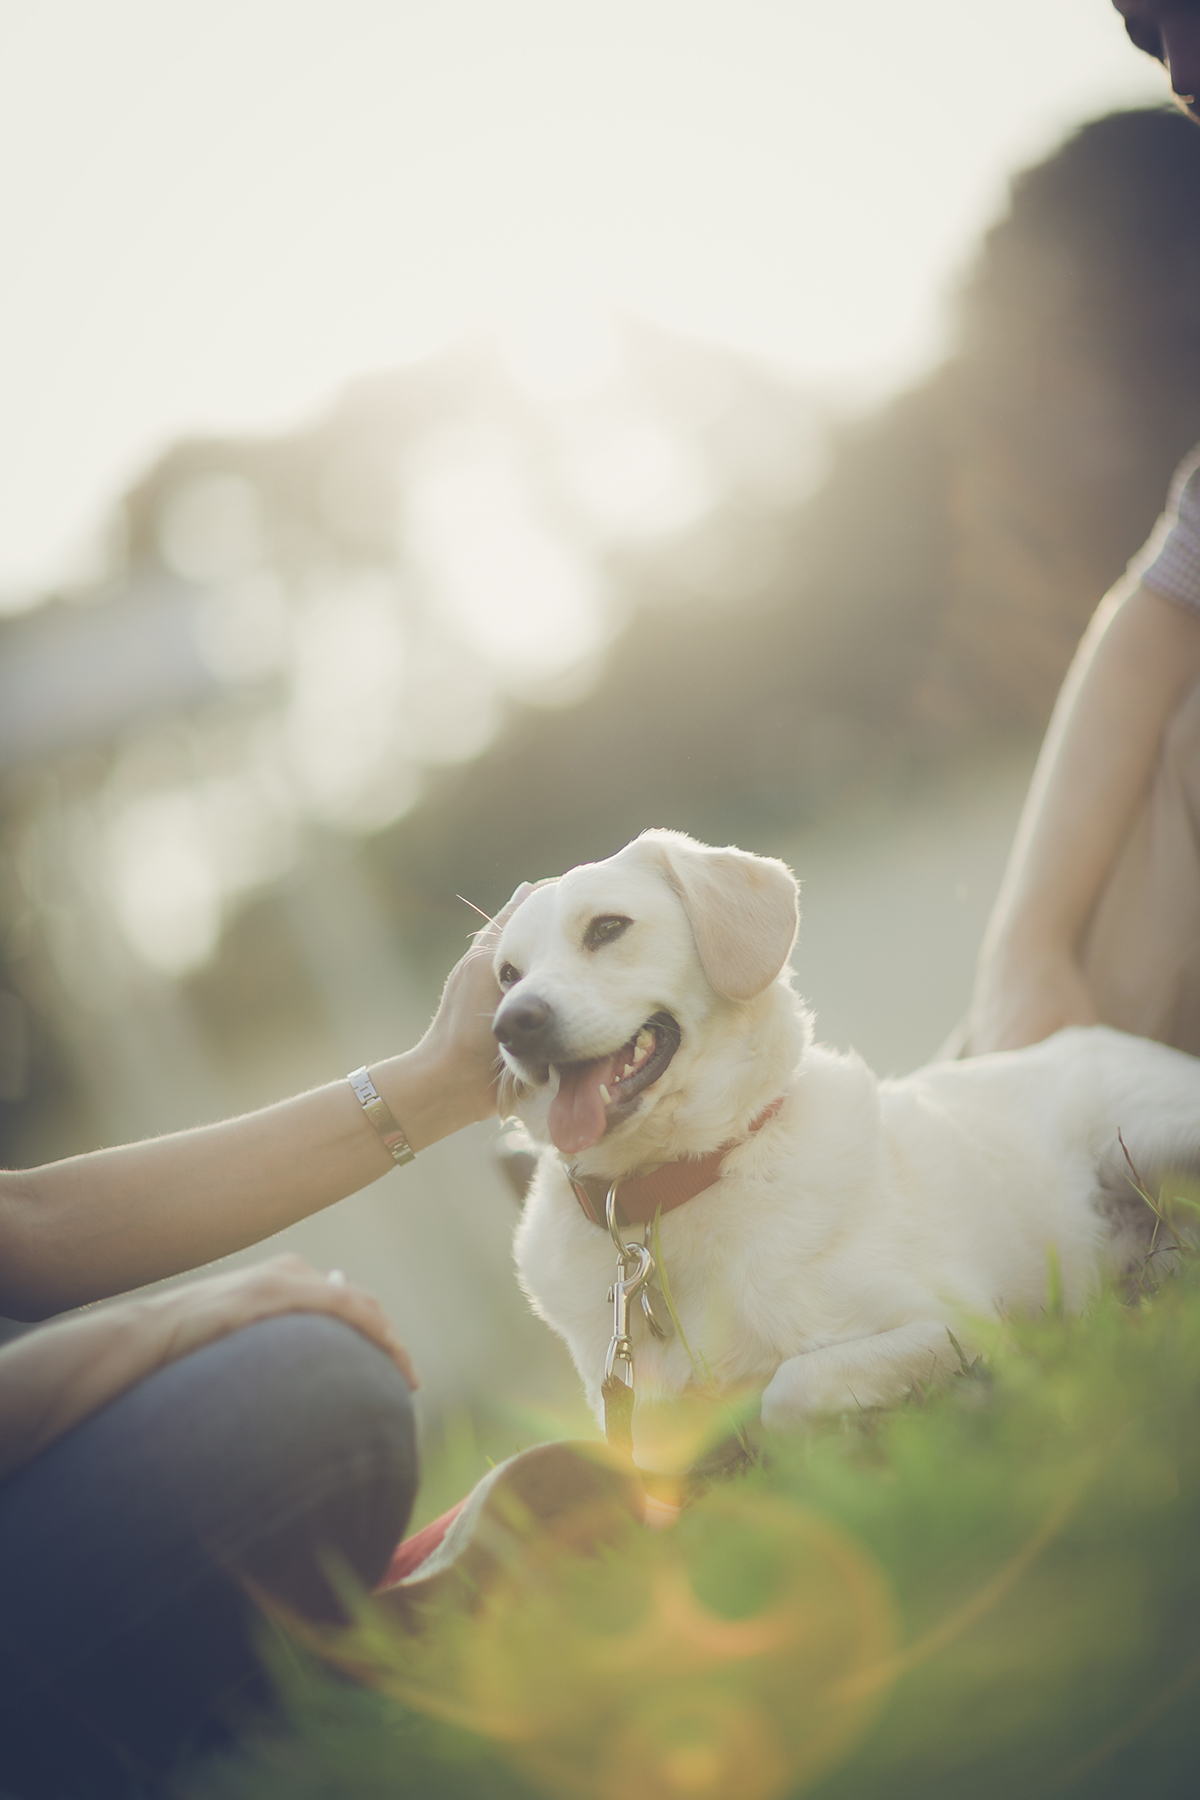 Why Dogs Are Good for More Than Just Snuggling